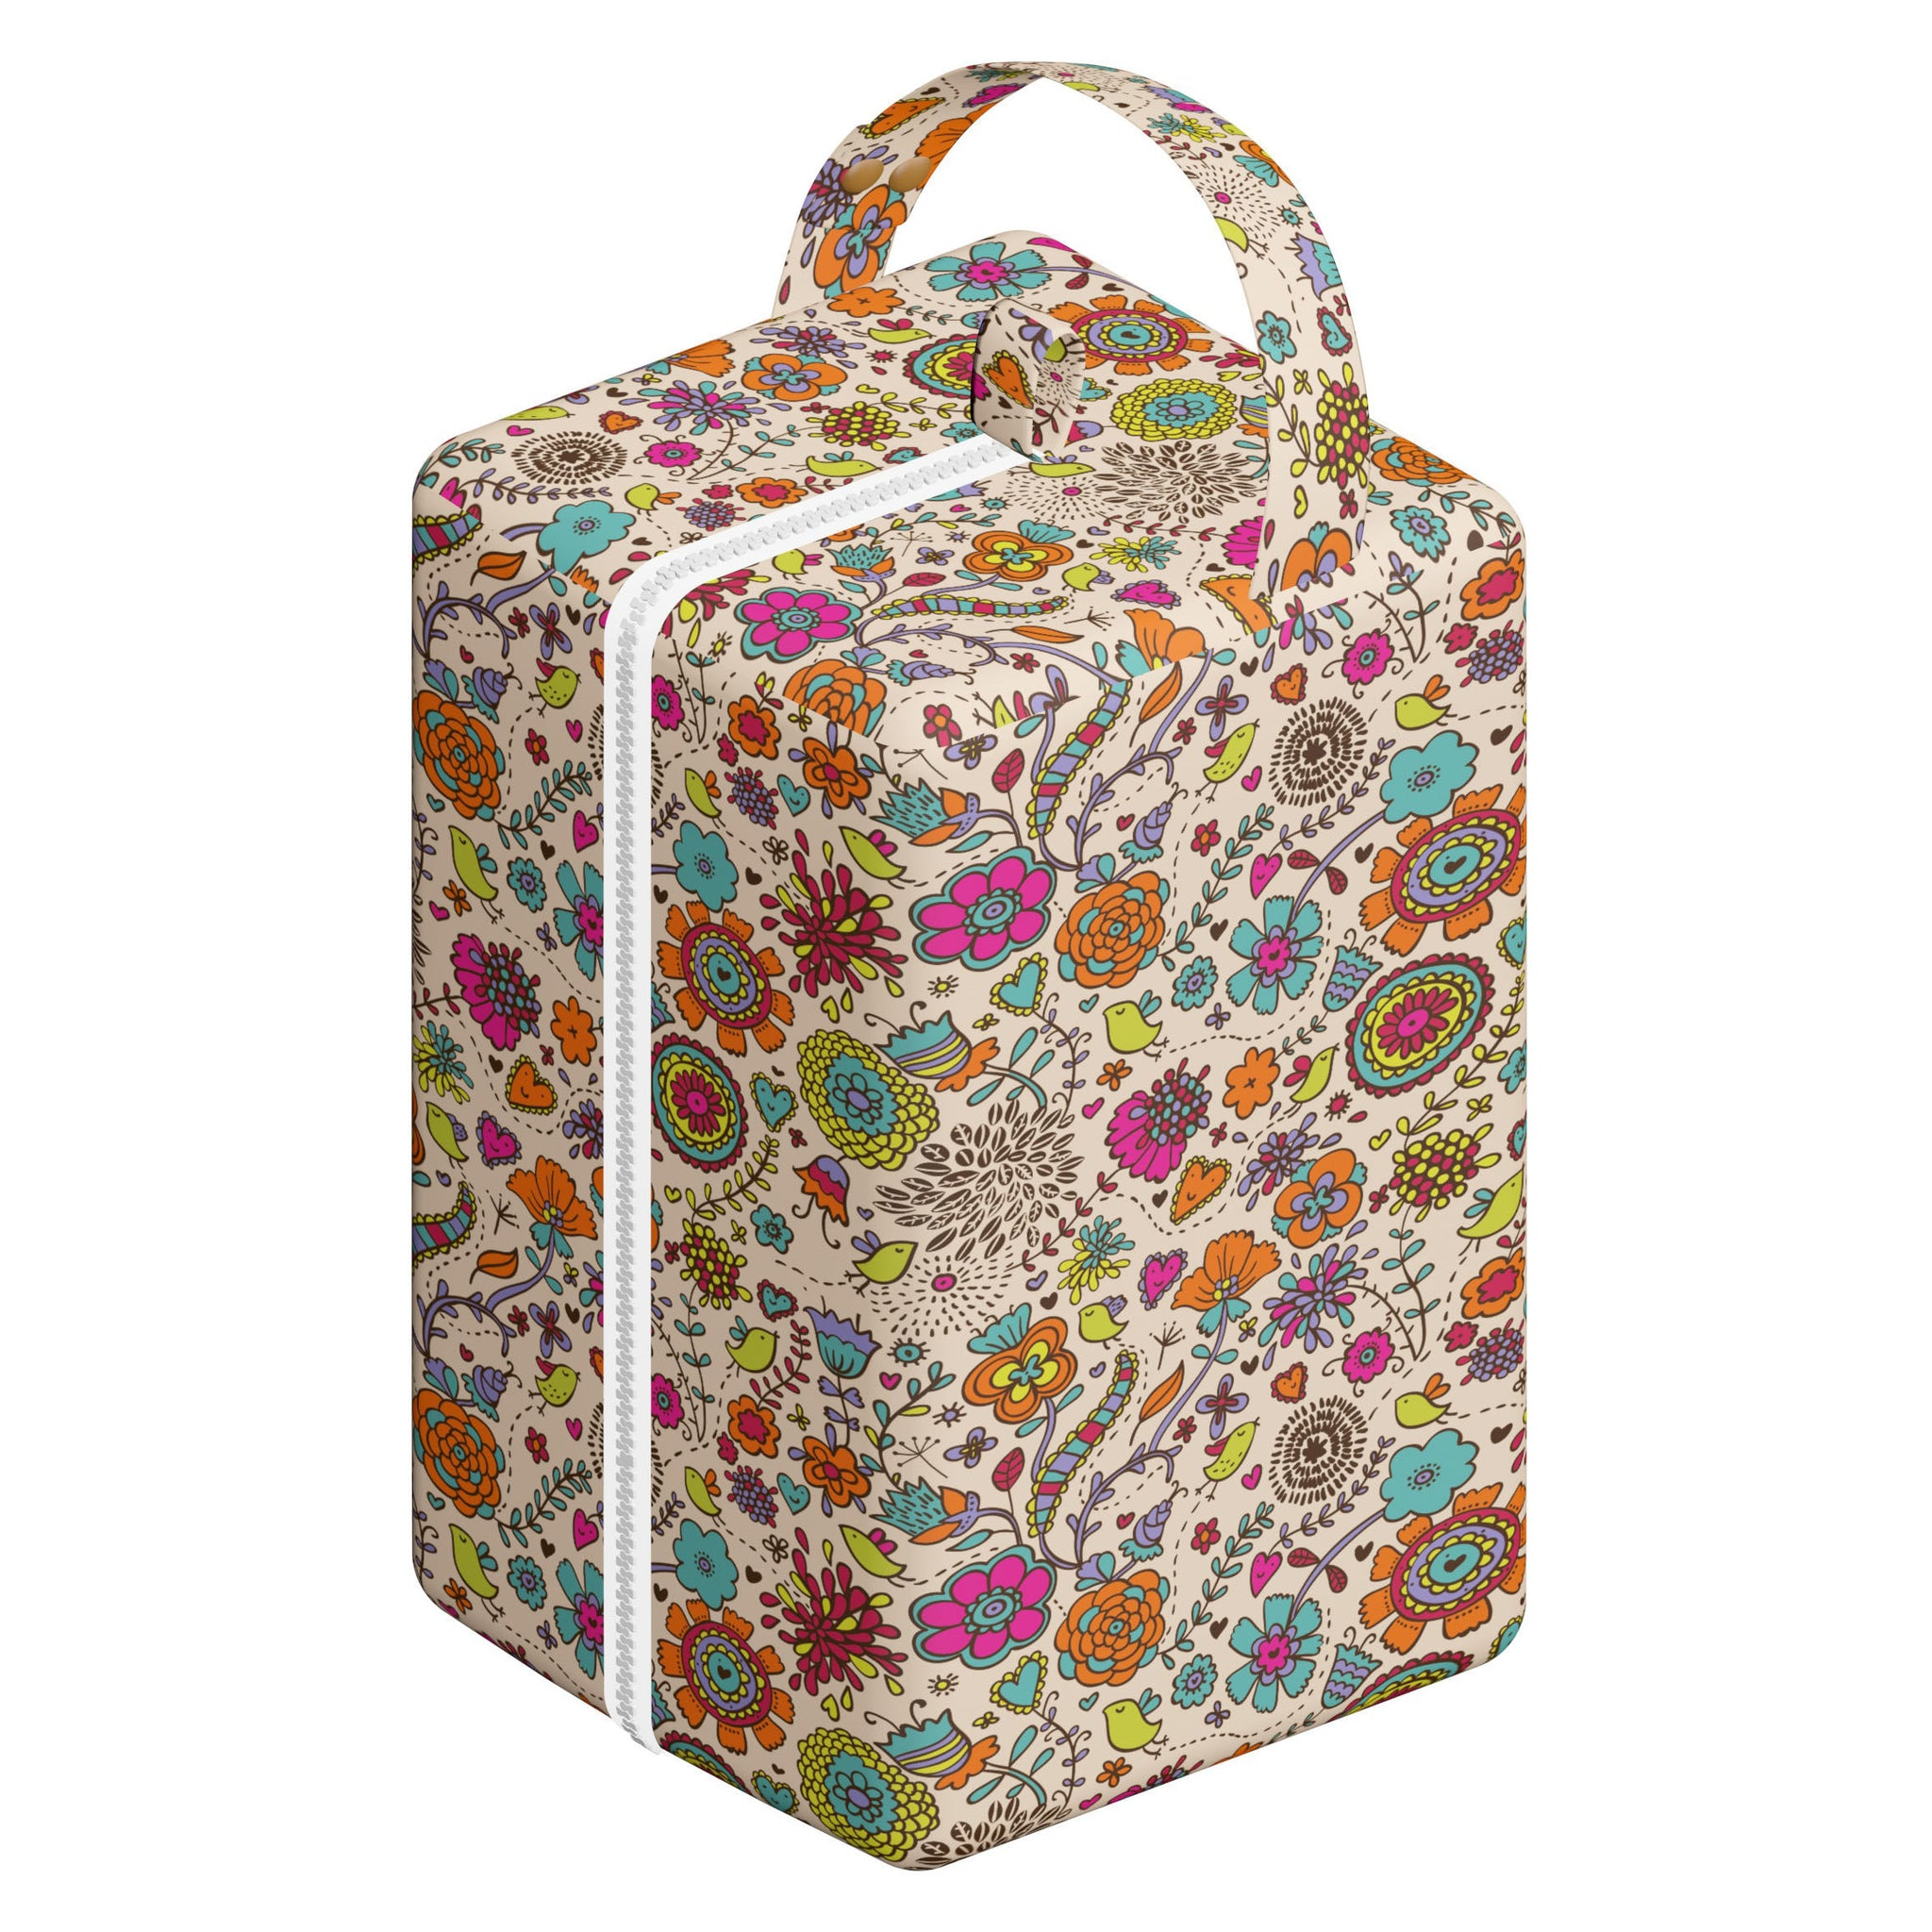 Nappy Box Co Funky Floral Print Nappy Pod Zip Wet Bag